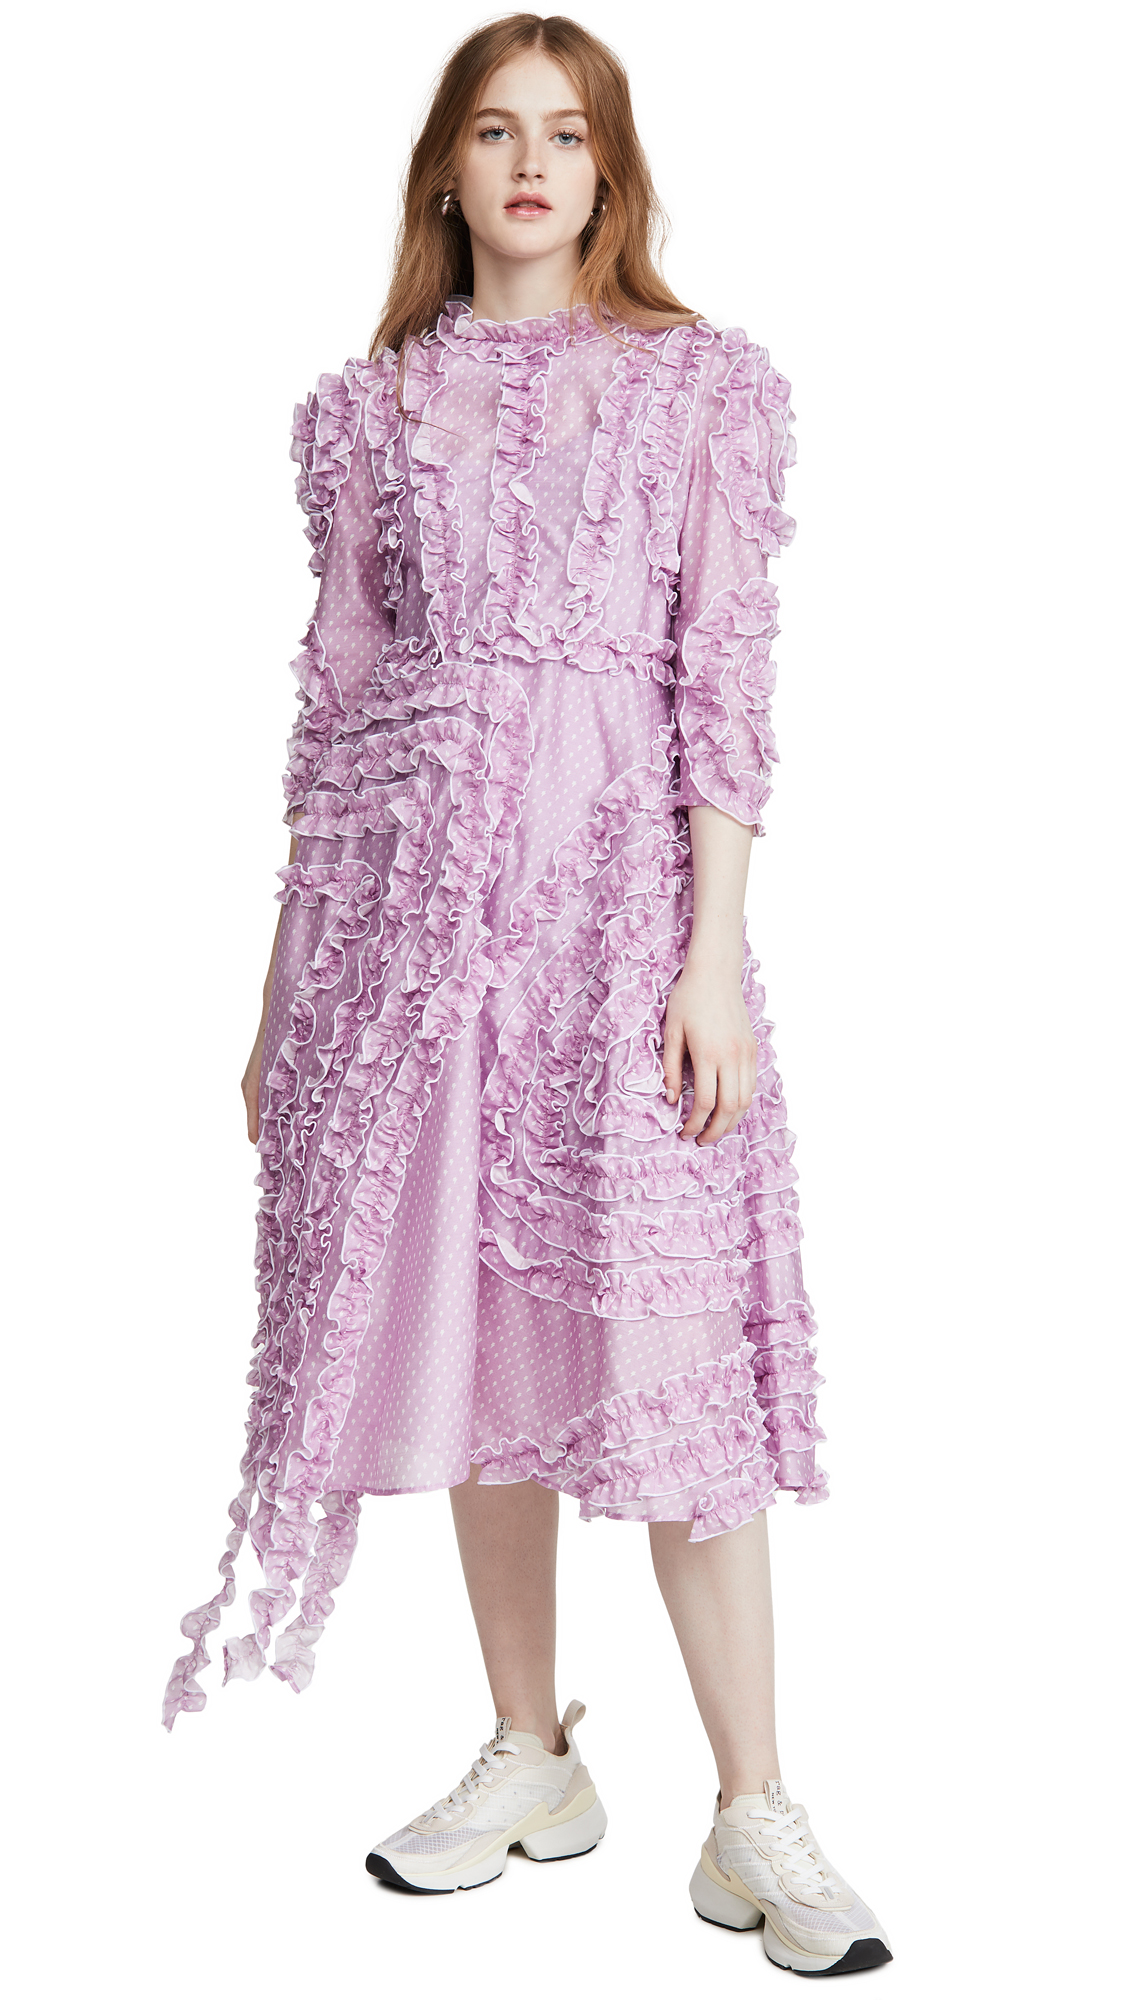 pushBUTTON Trimming Frill Dress - 40% Off Sale